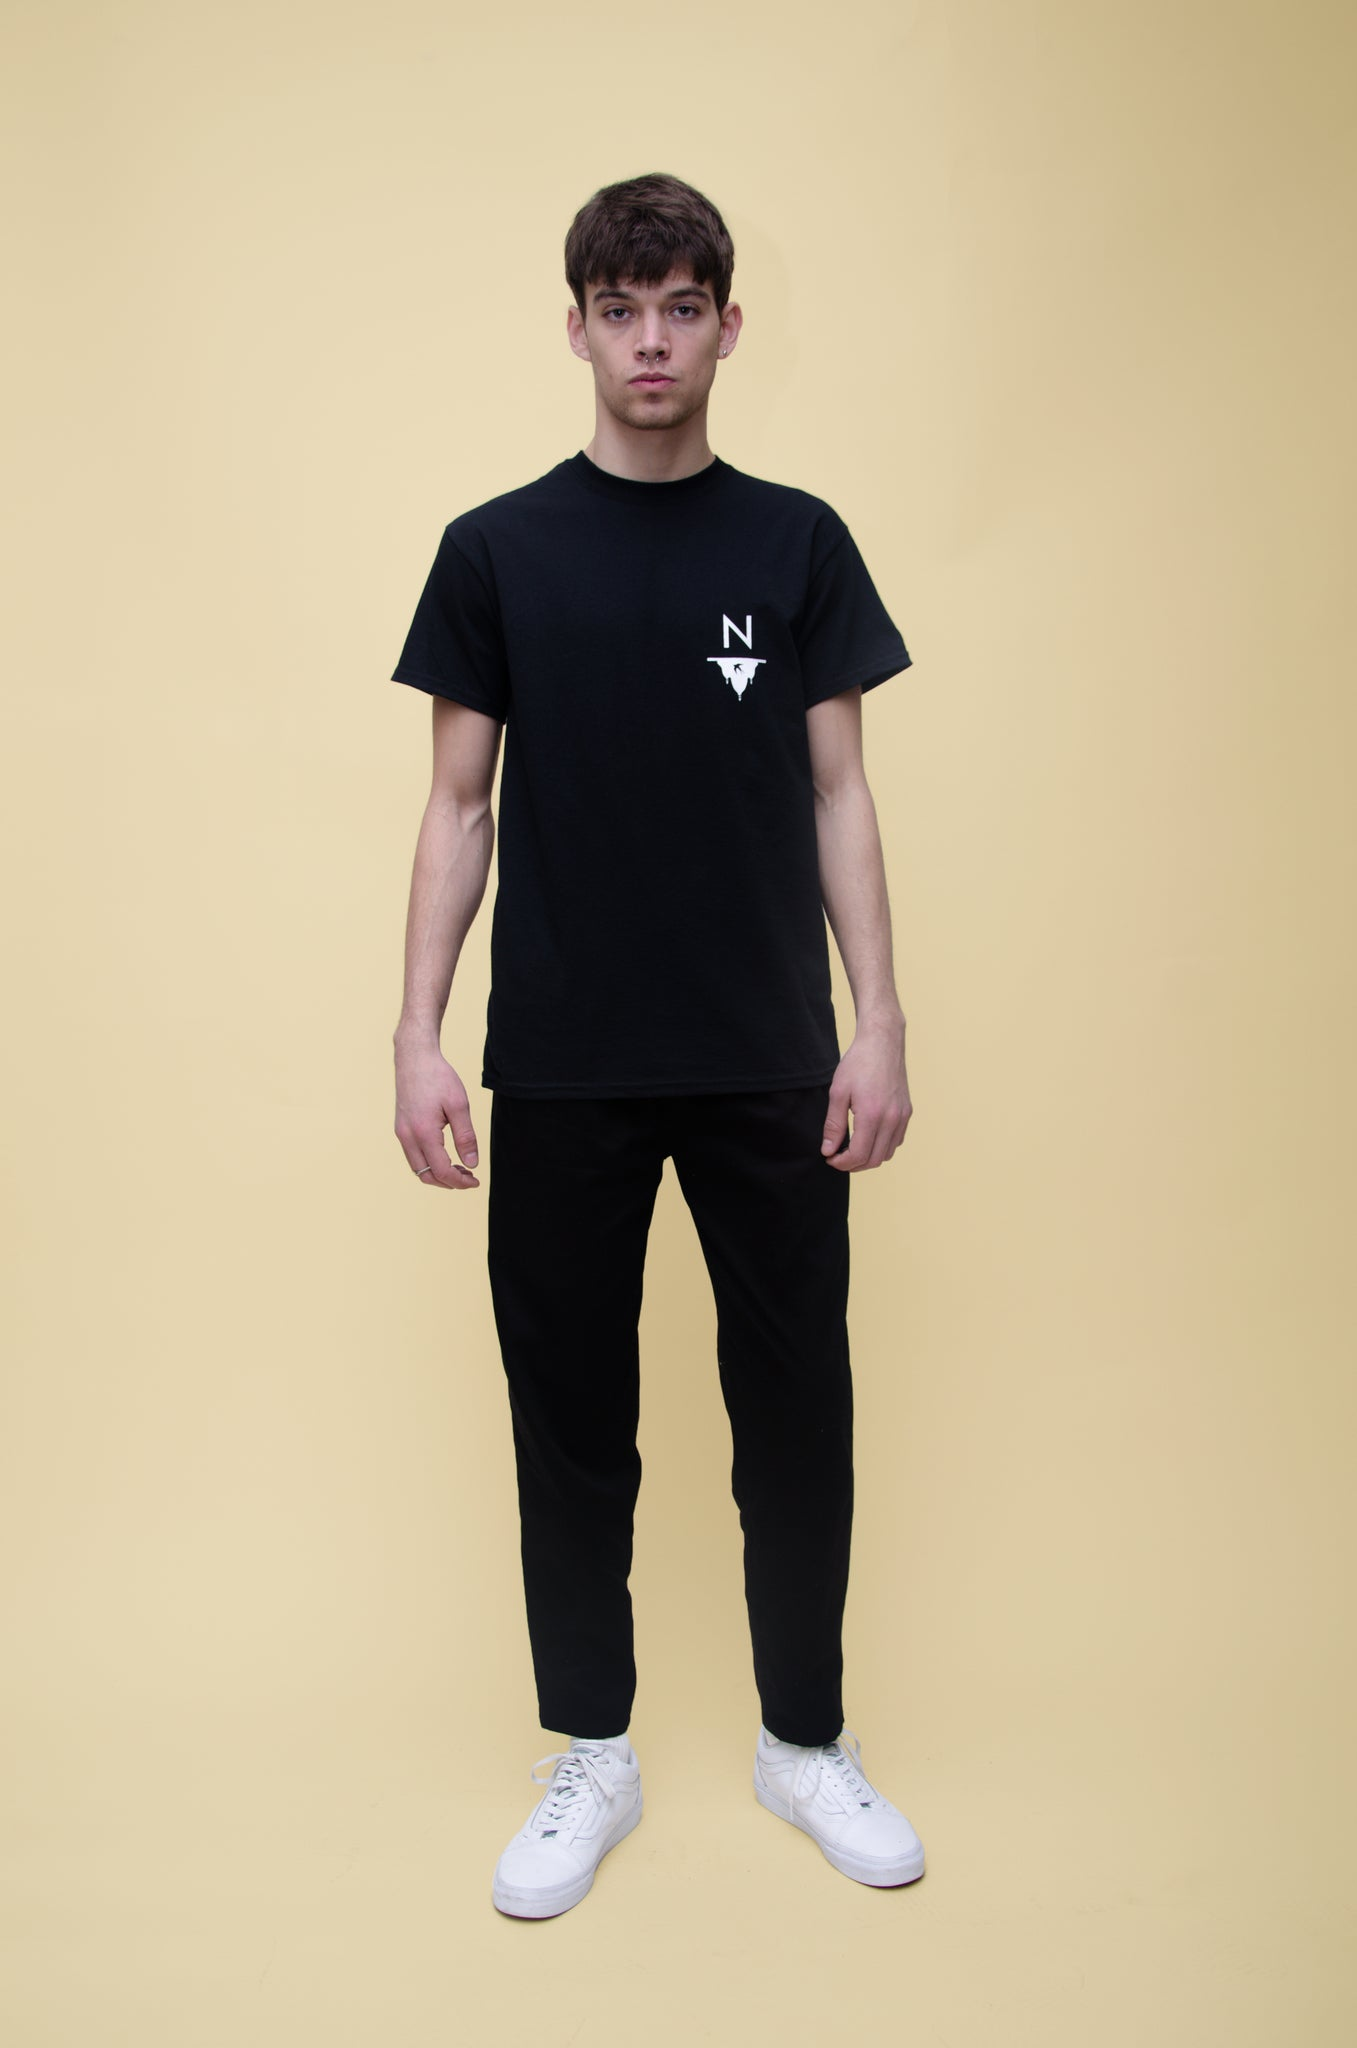 The North Hill Tour Tee is a made in France t-shirt